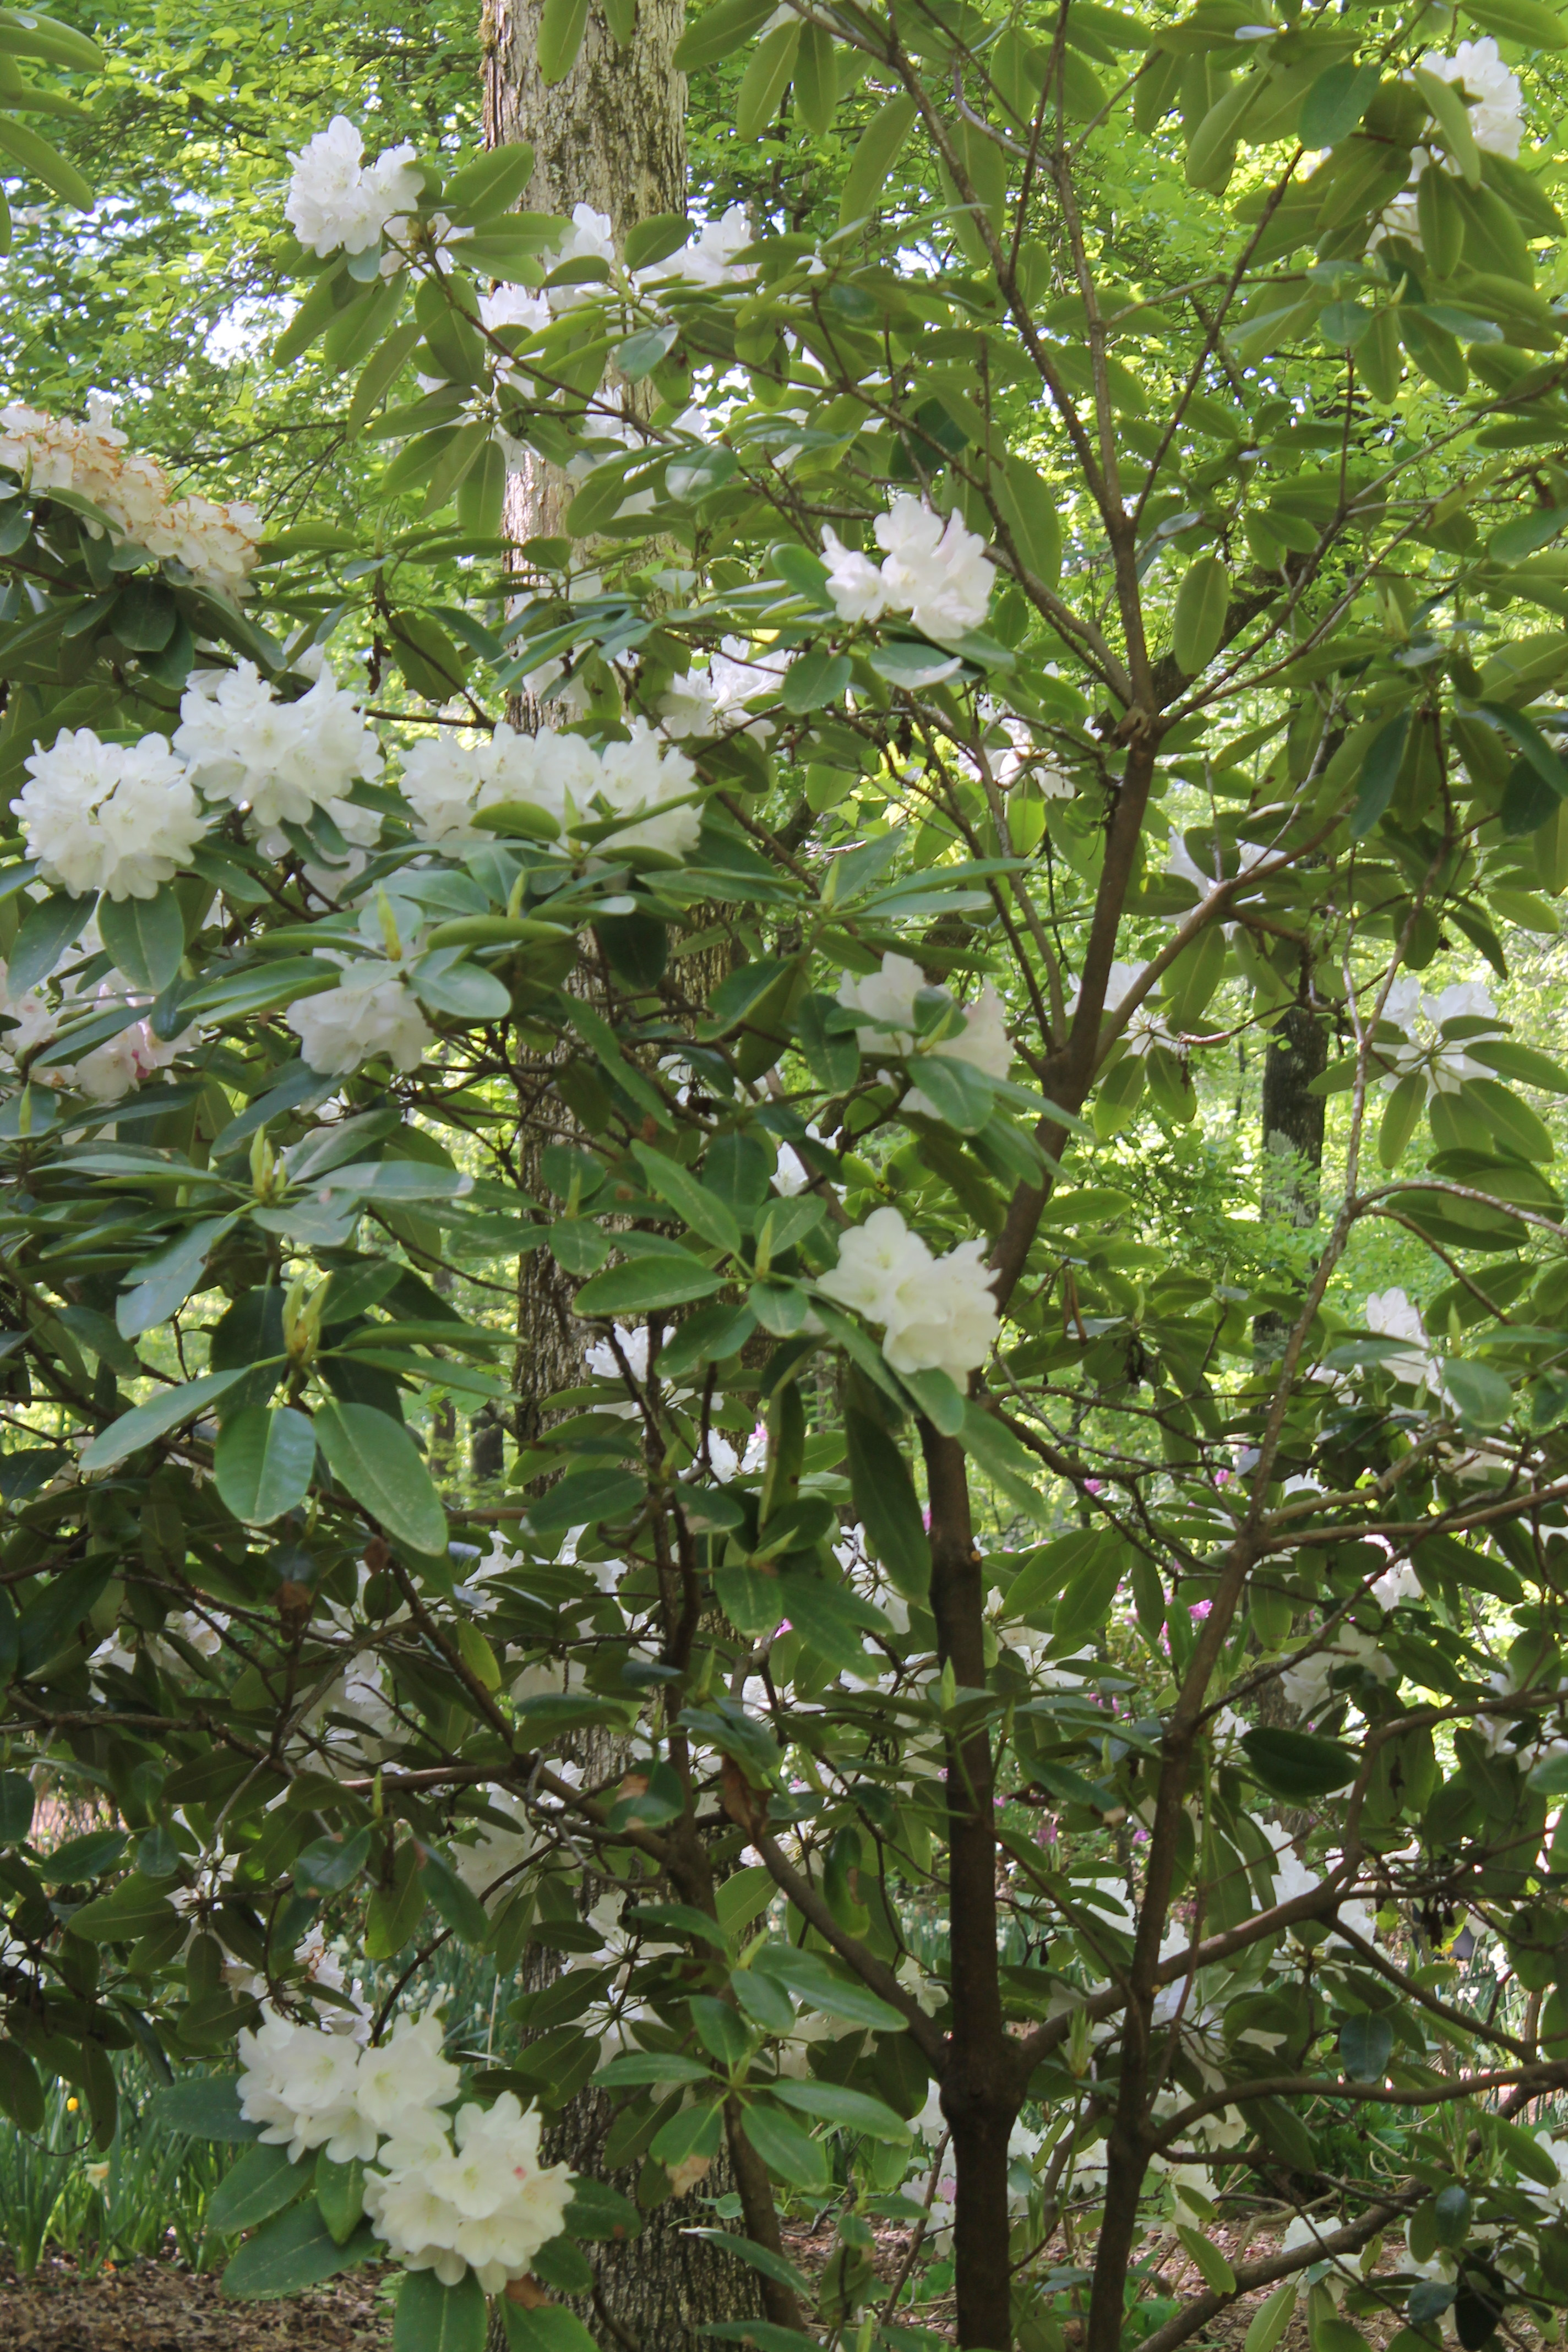 Rhododendron 'Chionoides' a hardy variety with white flowers.